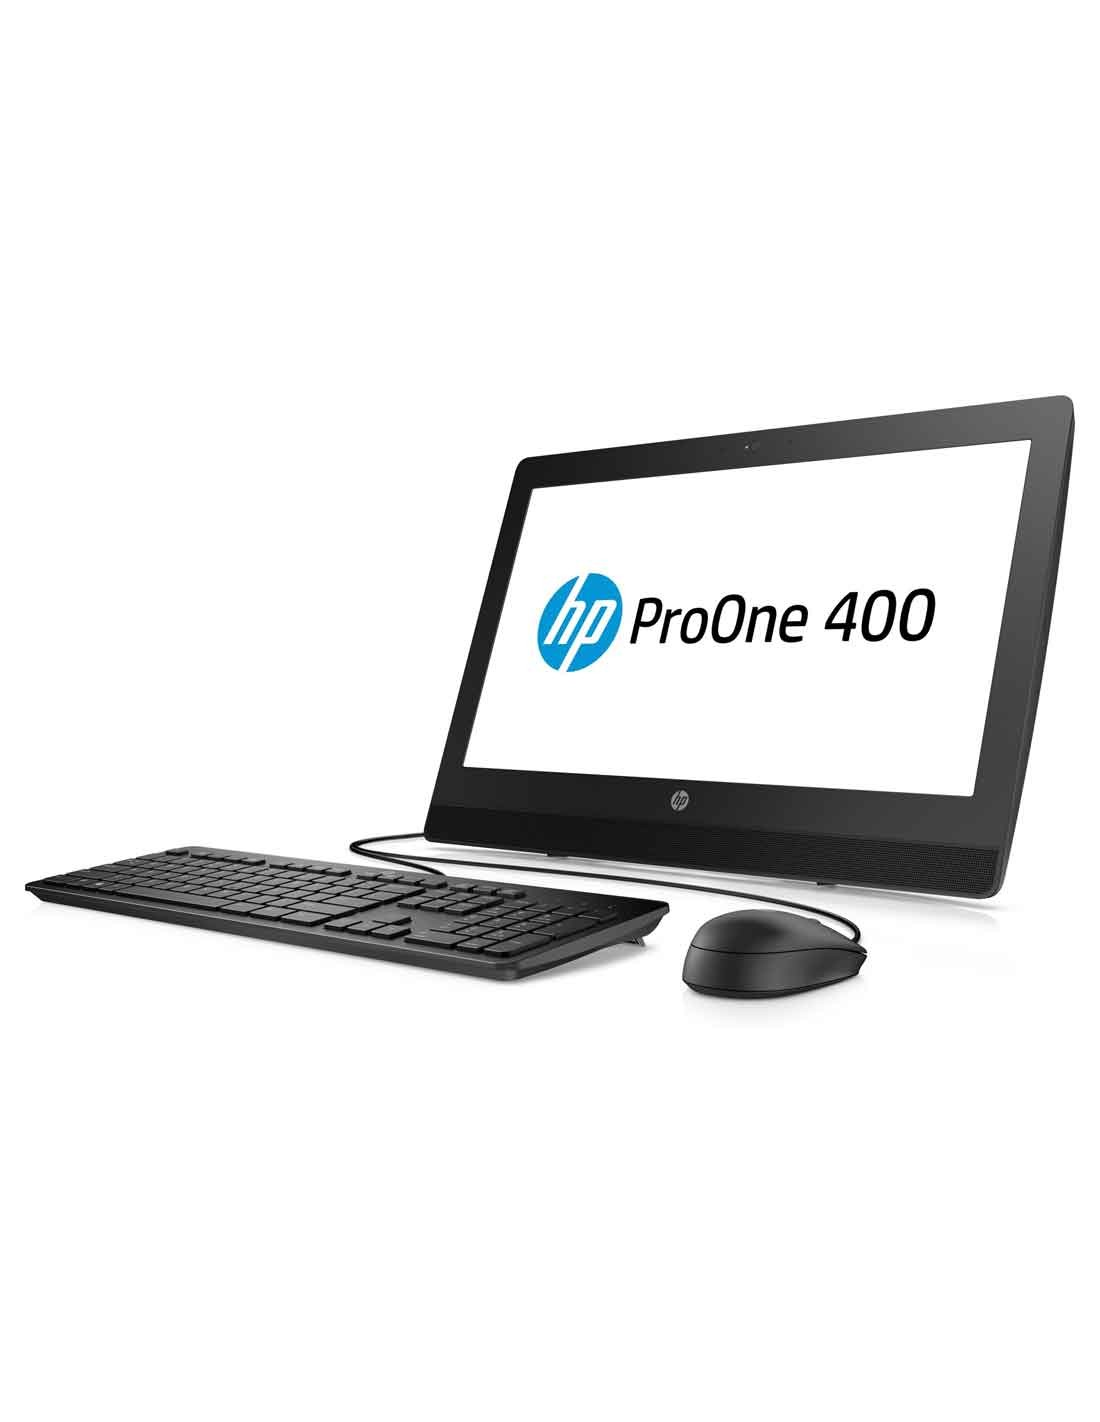 HP ProOne 400 G3 All-in-One Intel Core i5 4GB memory at the cheapest price in Dubai